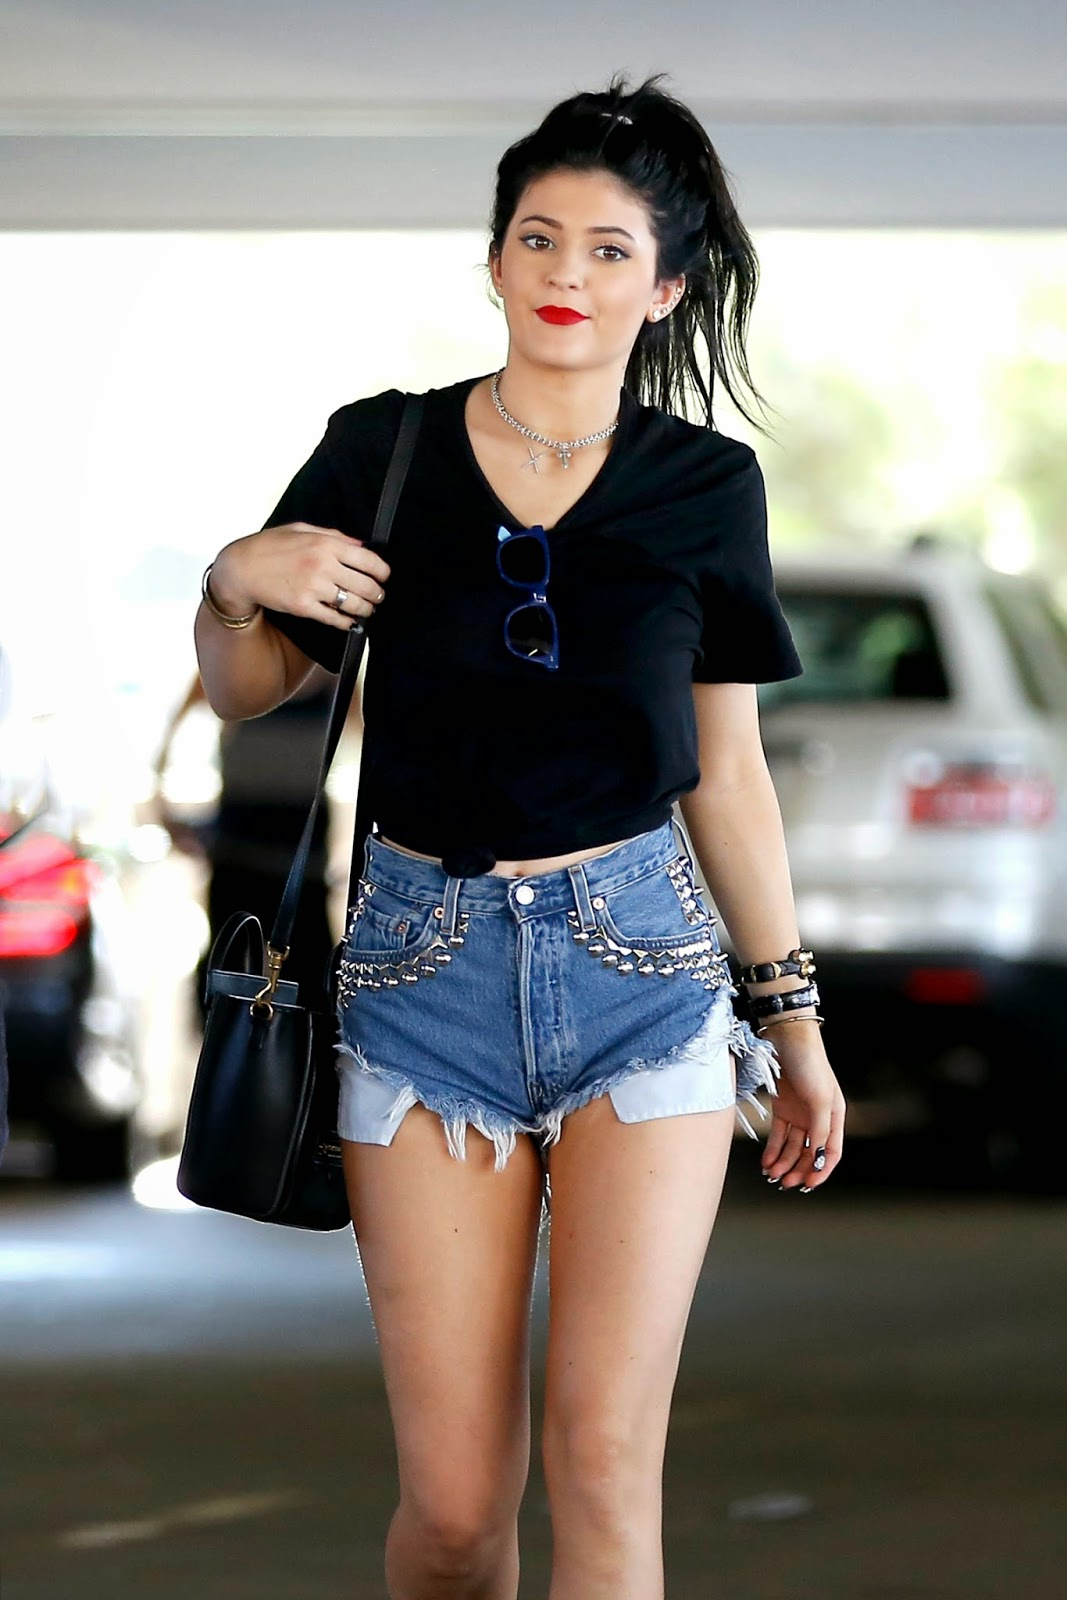 LovelyStars: 8/21/2013 Kylie Jenner Out With Friends Black Shorts Tumblr